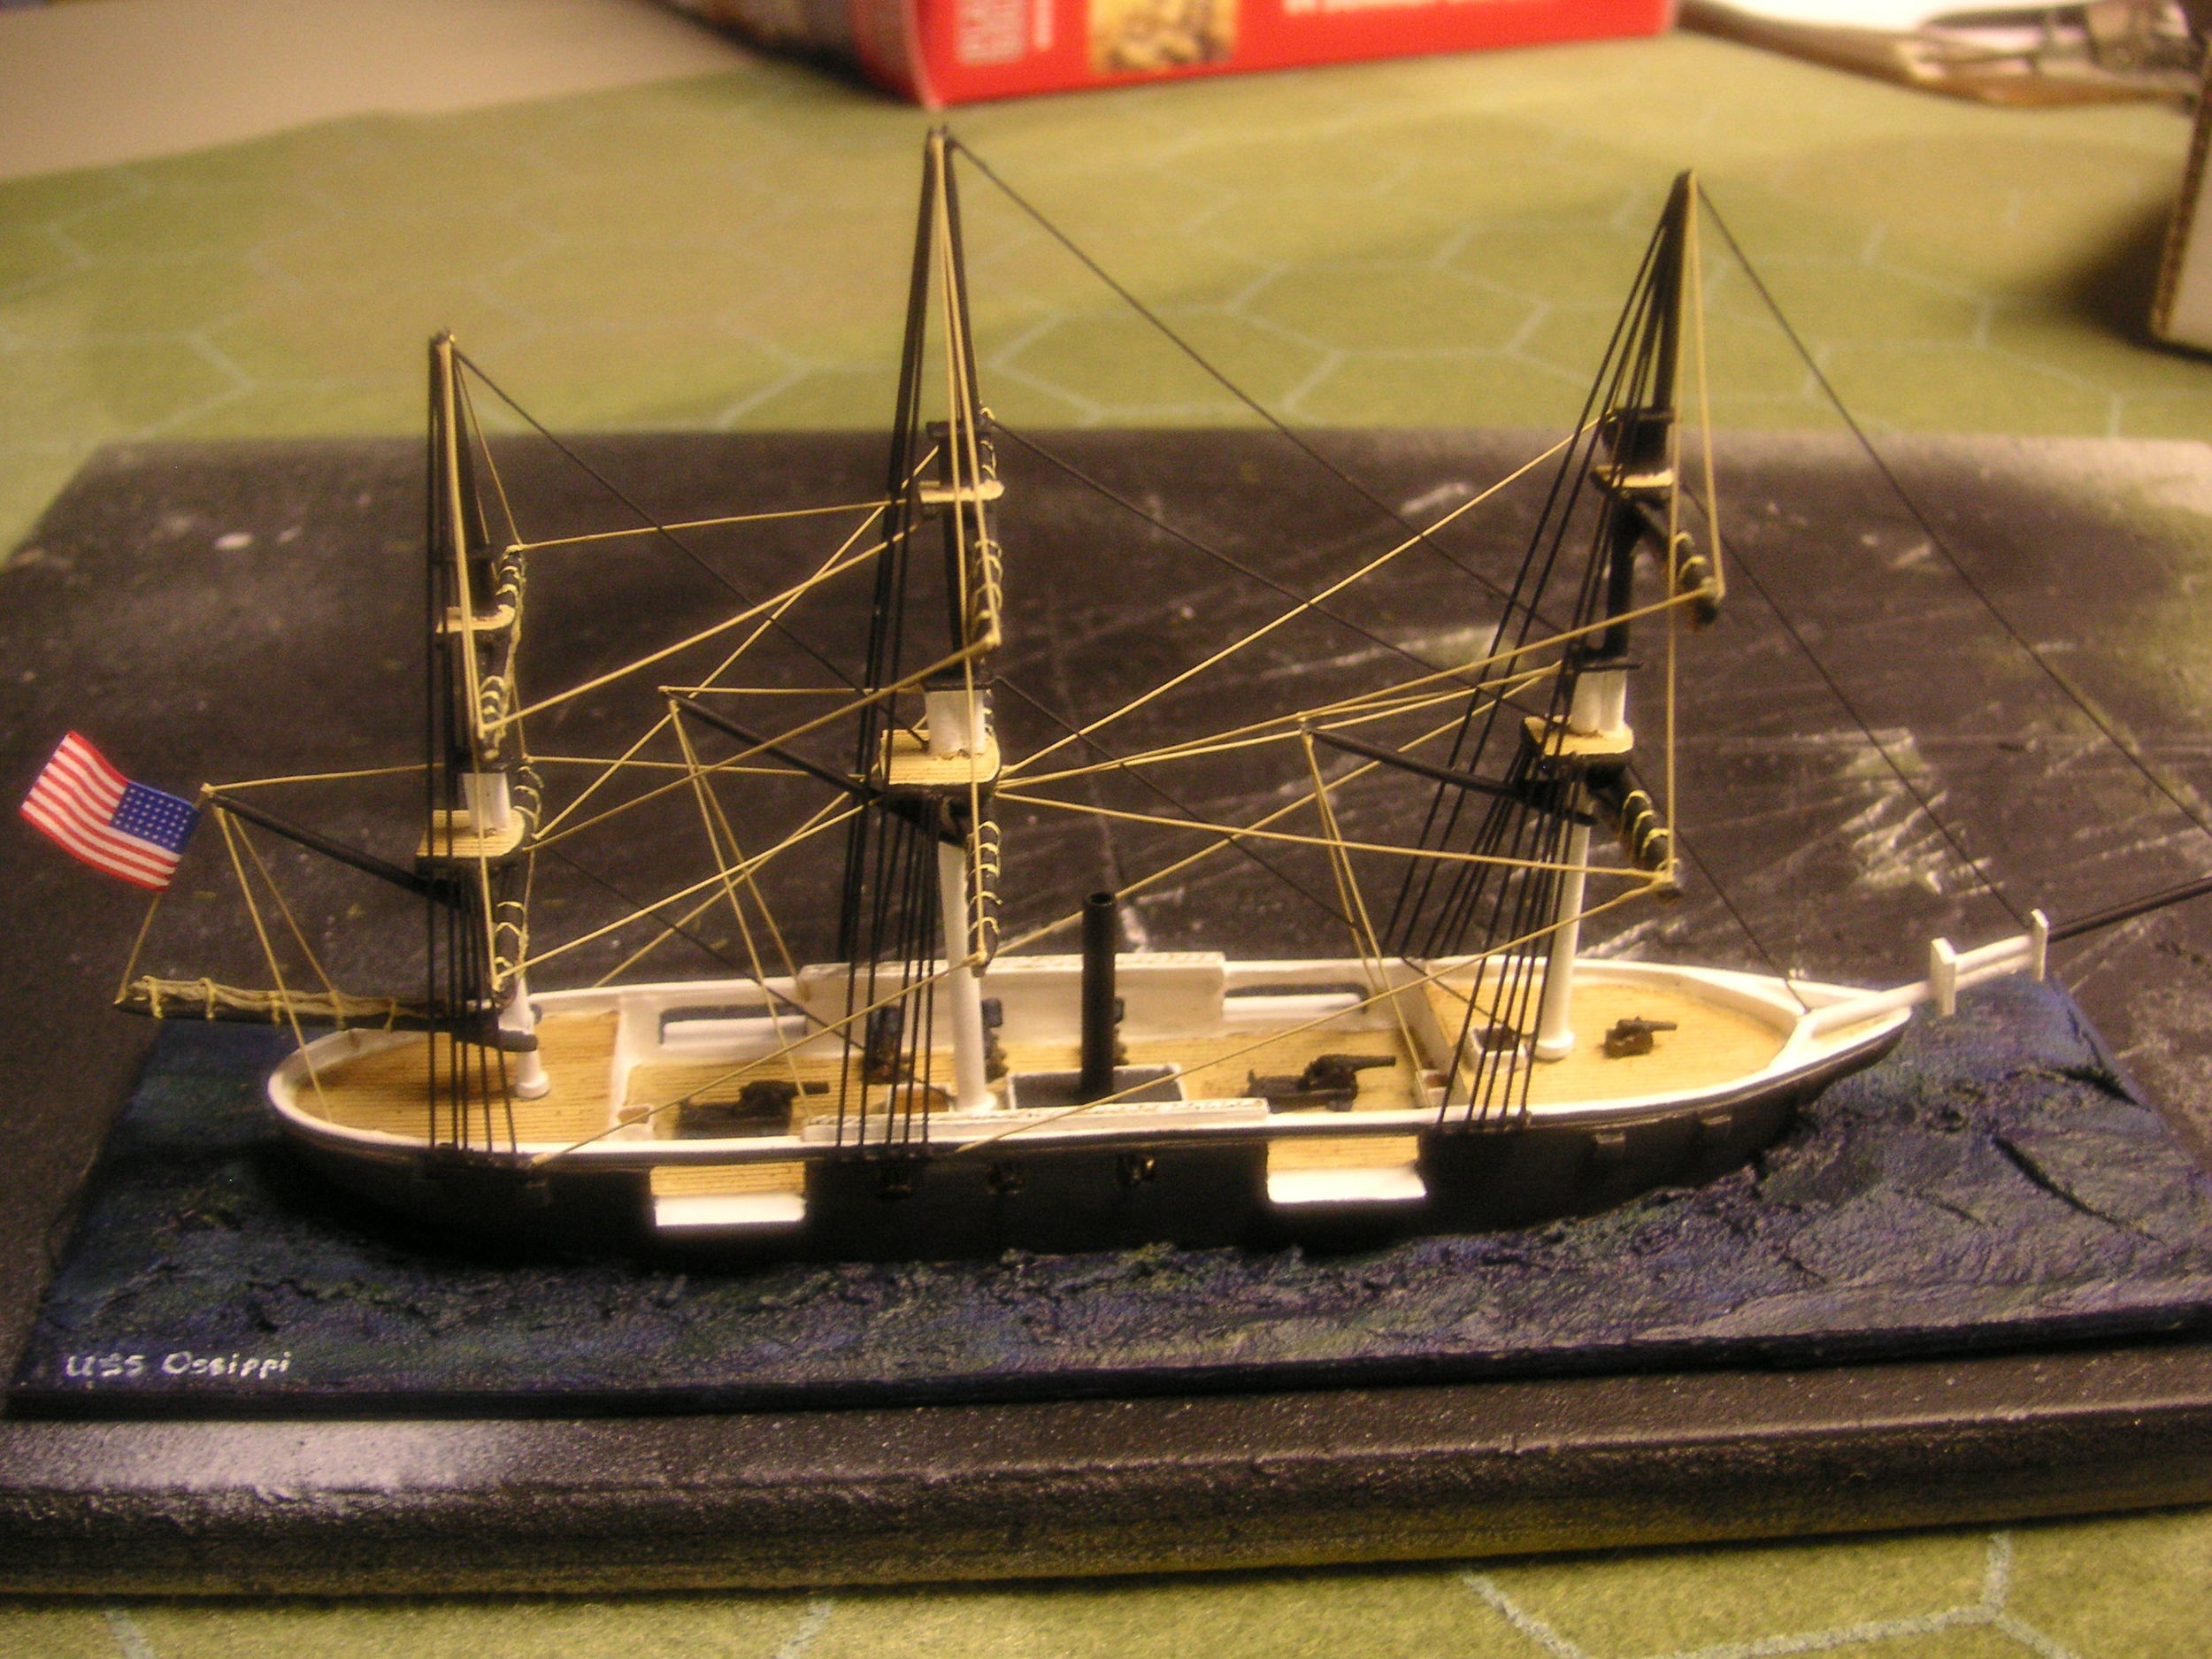 USS Ossippi in 1/600th scale